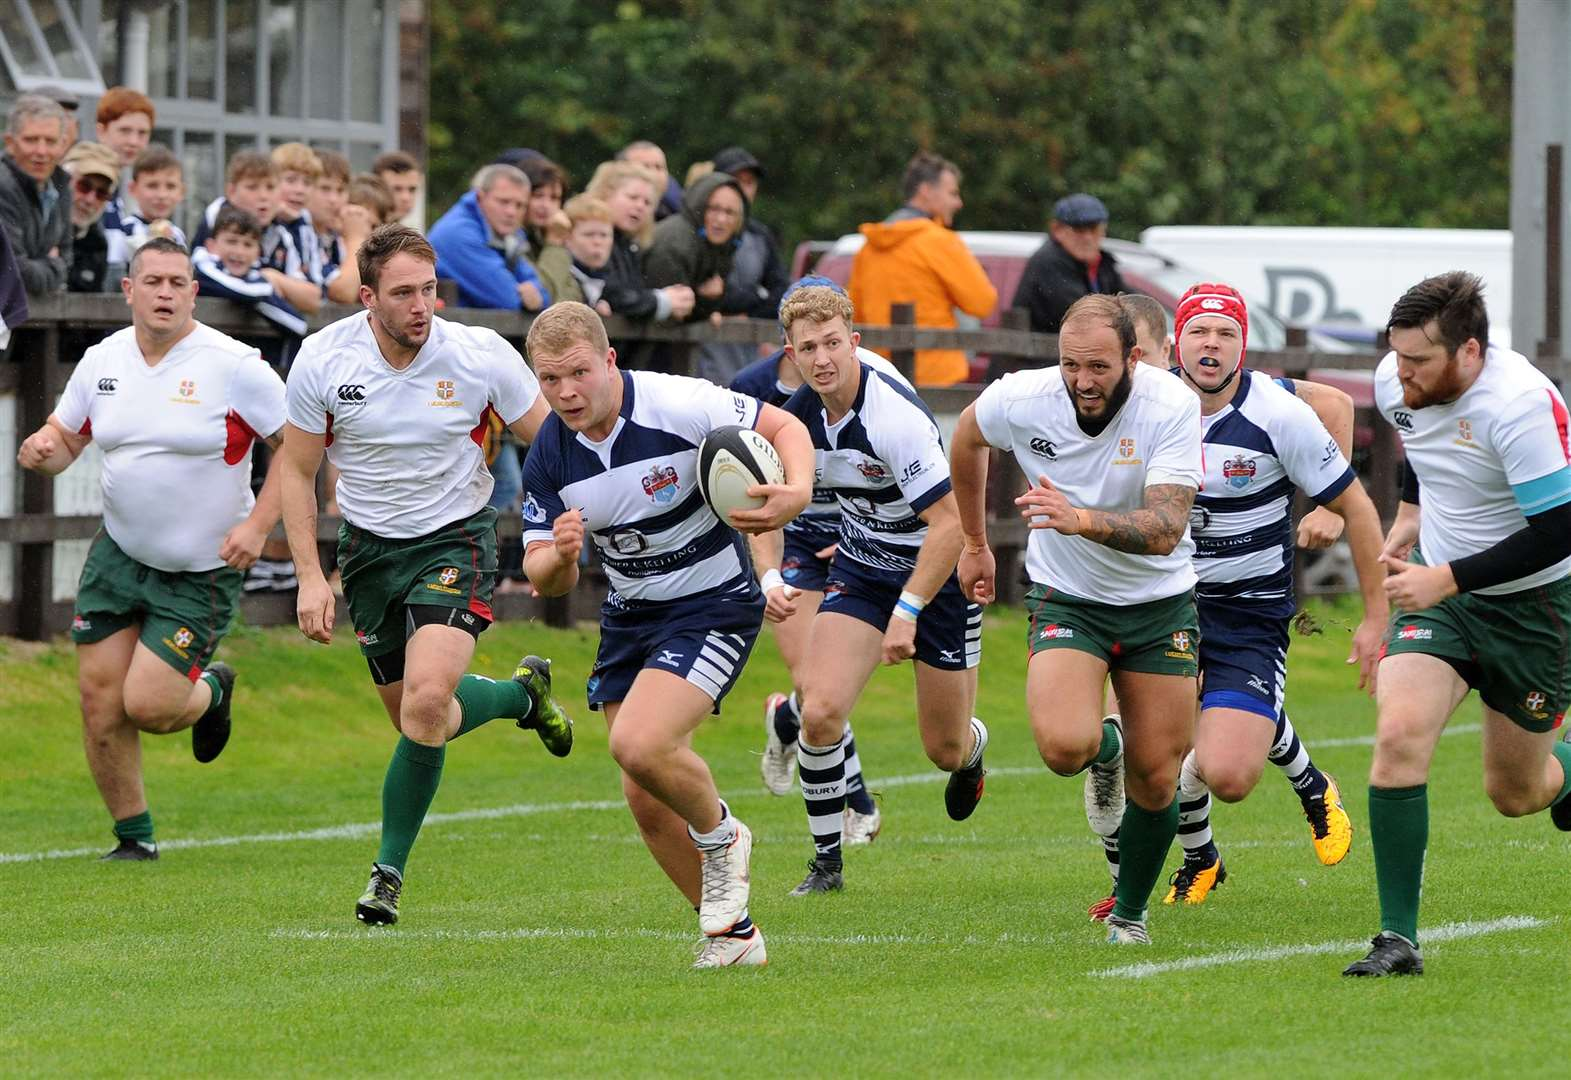 Sudbury complete turnaround with Woodford display